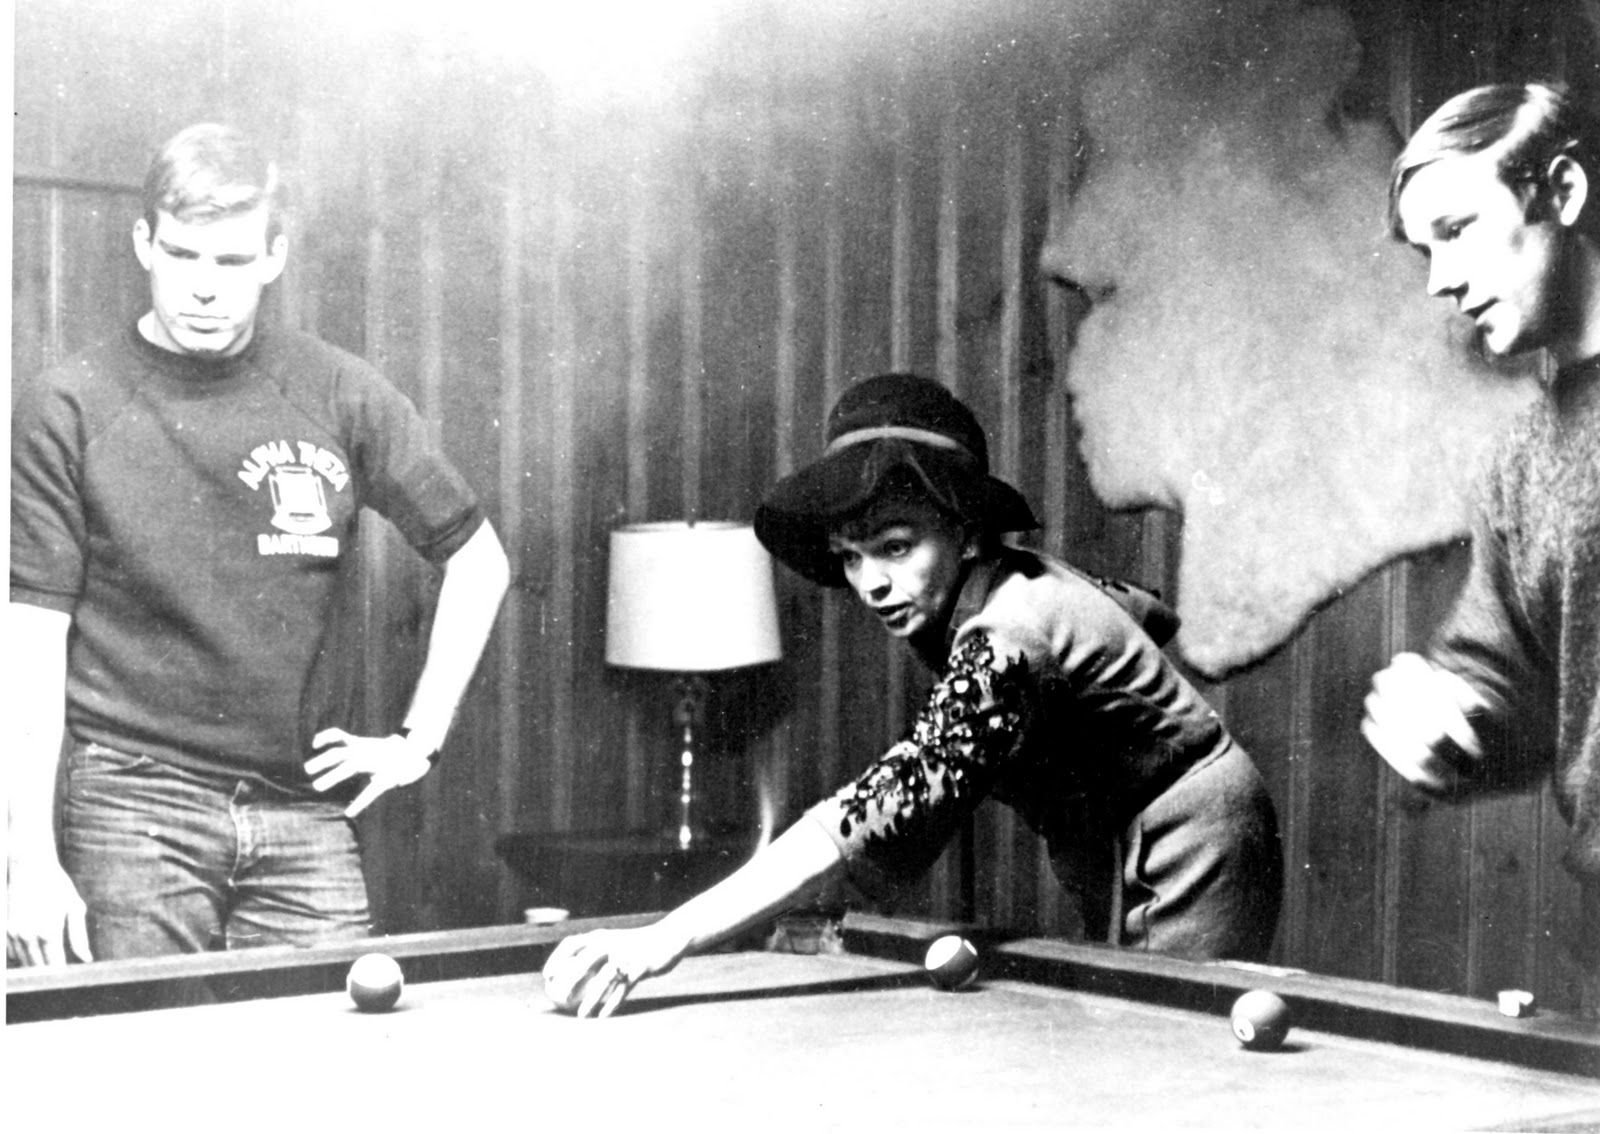 Judy playing pool - I have this photo (bought it off eBay. Classic.